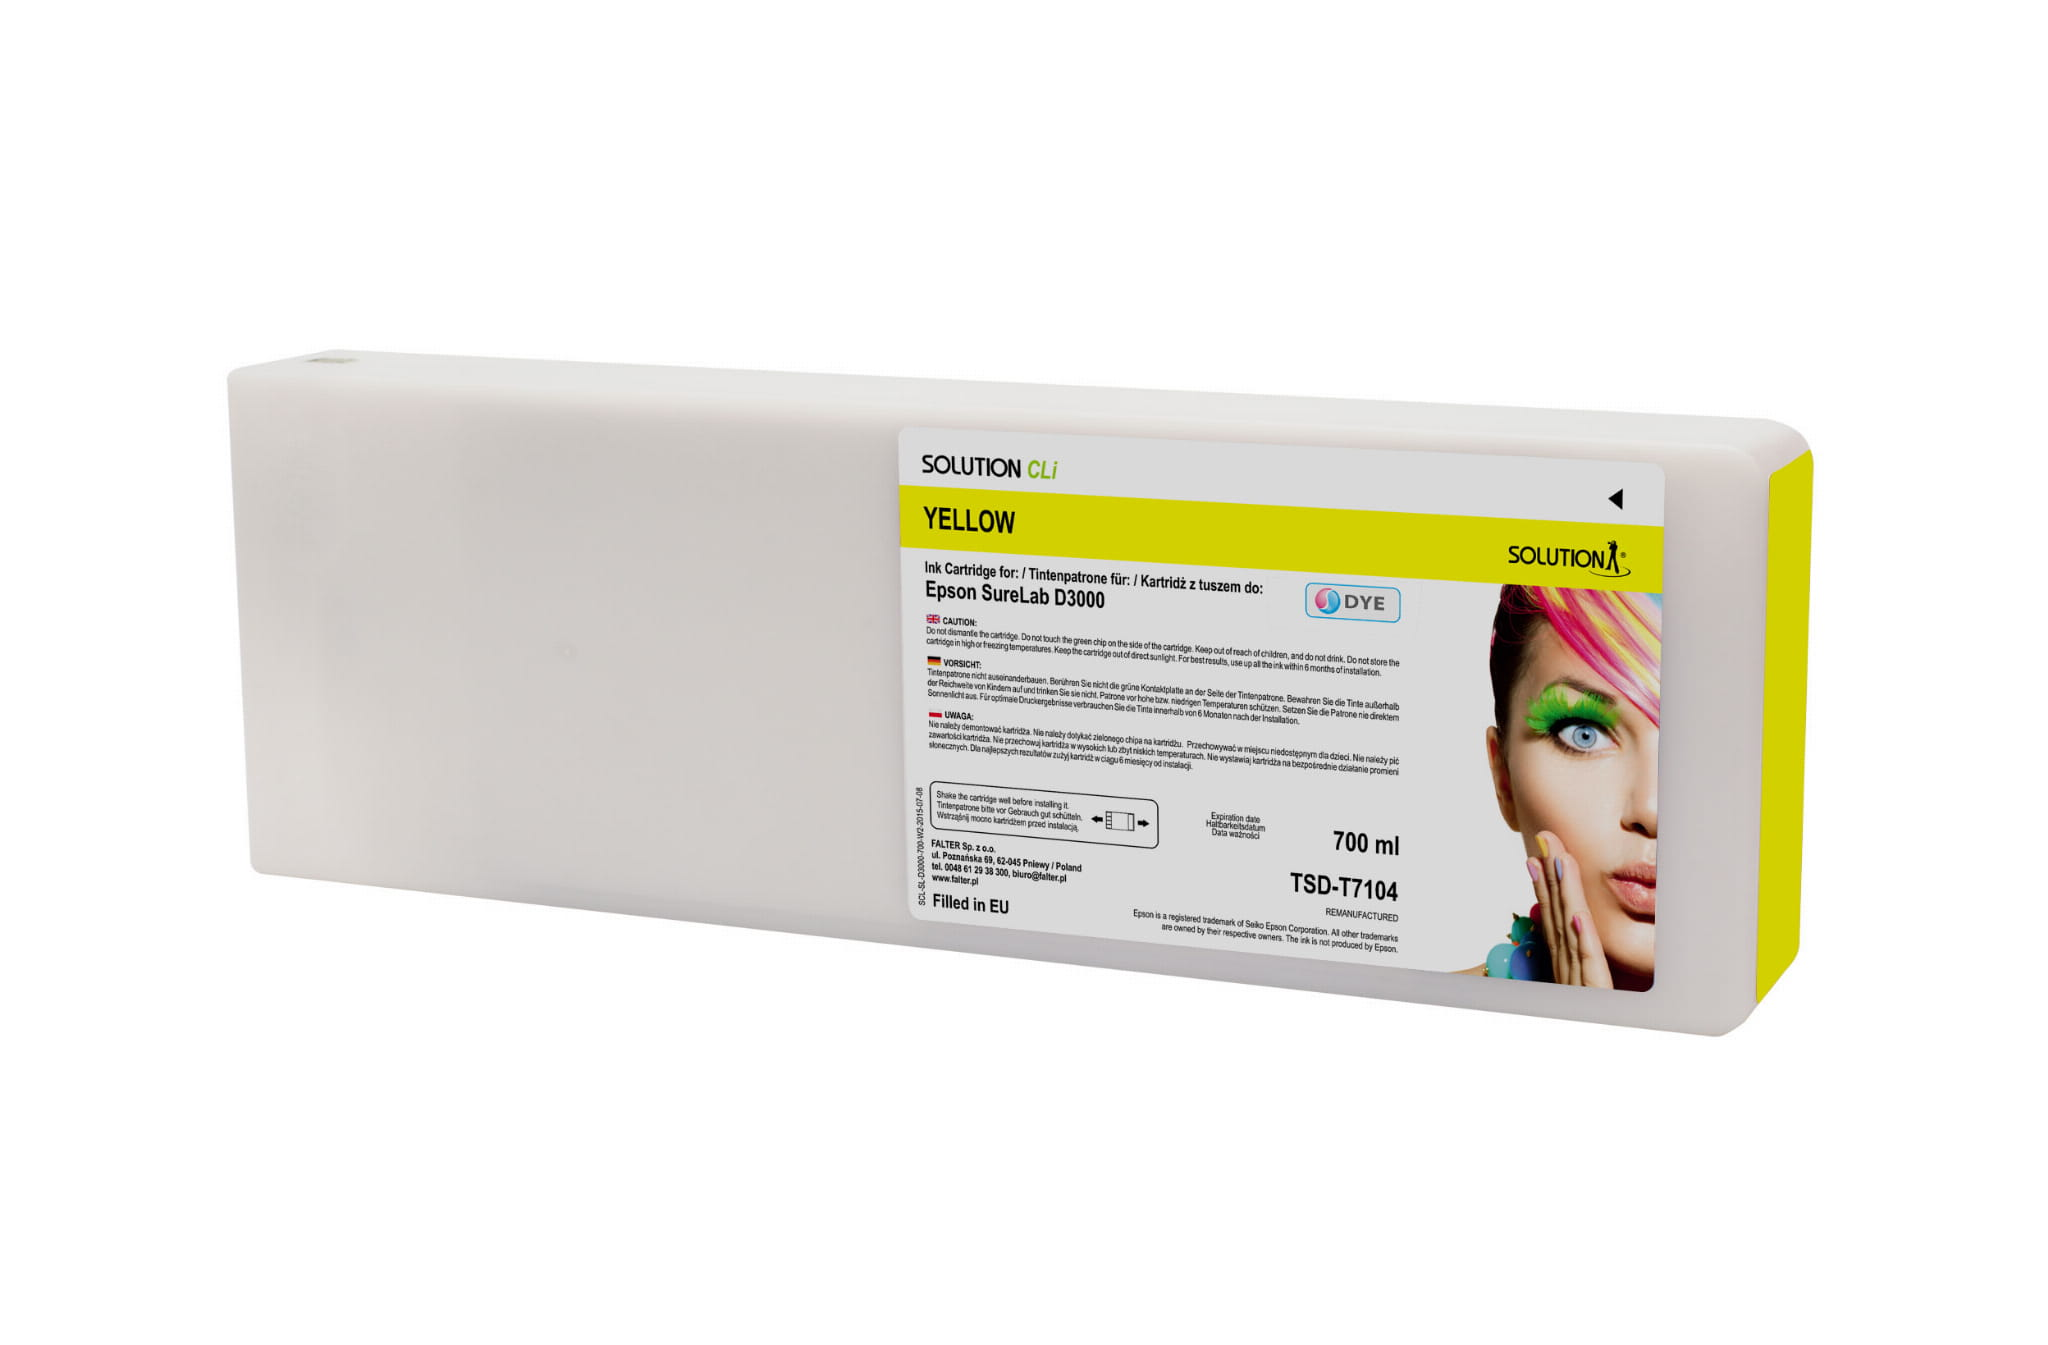 SOLUTION CLi INK FOR EPSON SURE LAB D3000 YELLOW 700 ML